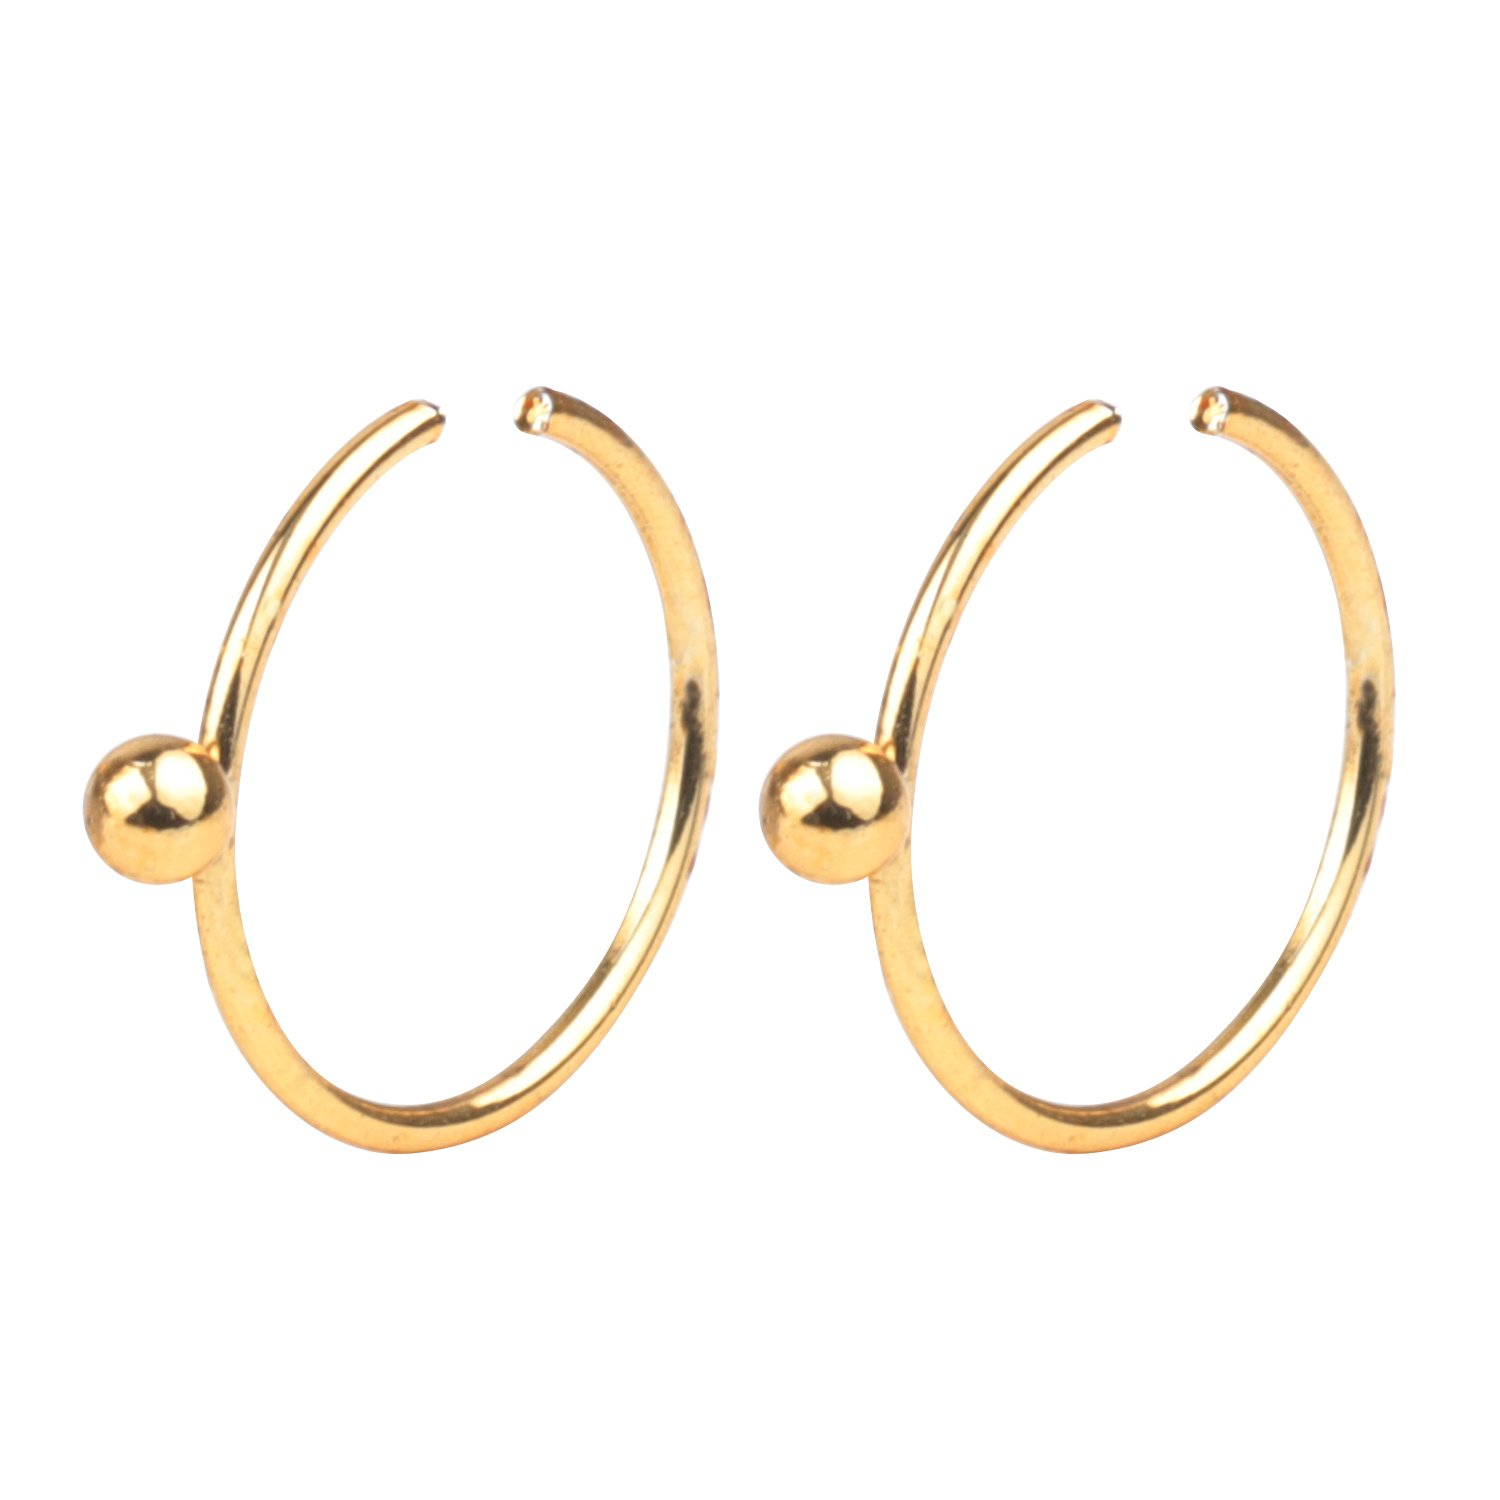 FORYOU FASHION Surgical Steel 22G 8mm Nose Rings Piercing Jewelry Hoop Nose Ring